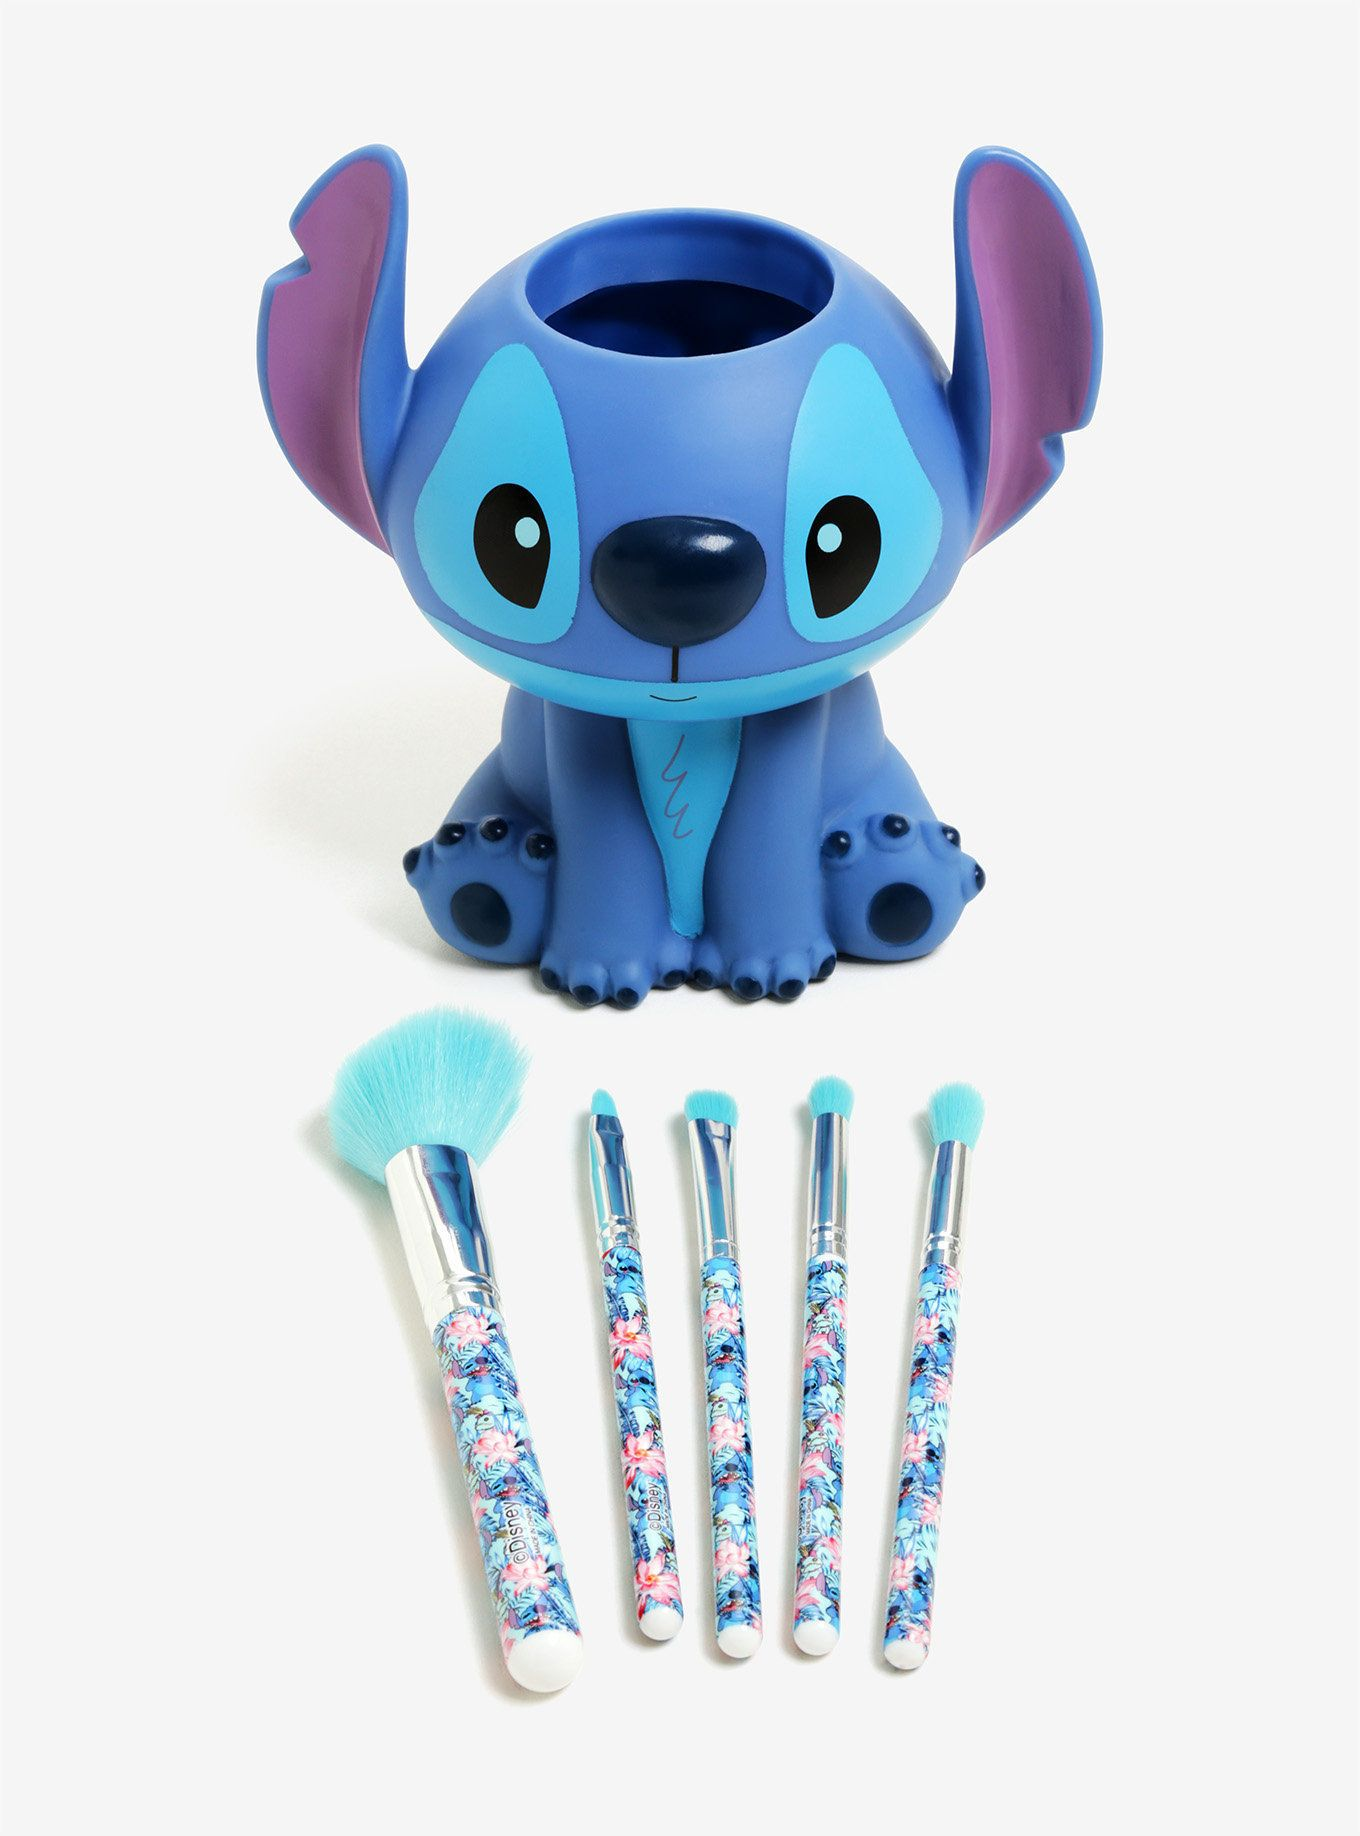 But that's not all — it comes with a brush holder shaped